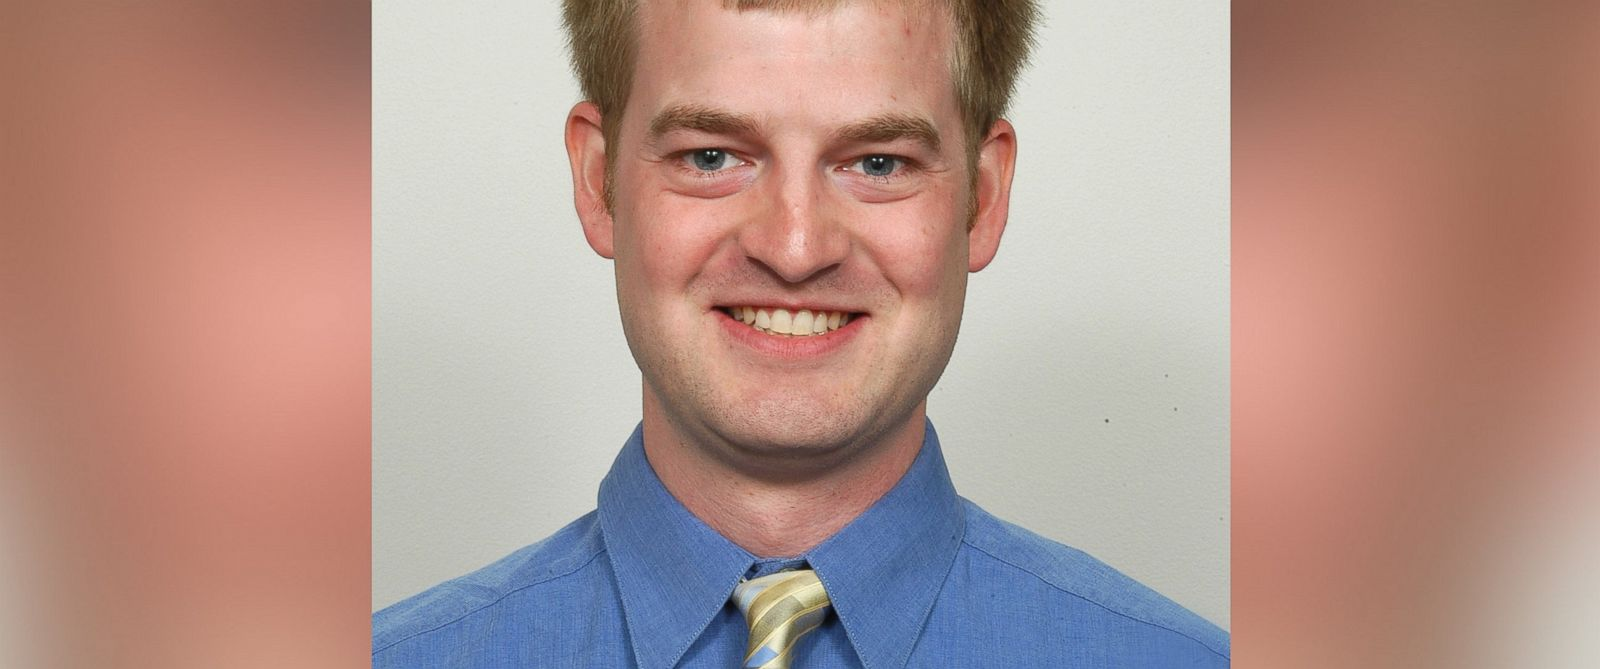 PHOTO: Dr. Kent Brantly is shown in this 2013 photo provided by JPS Health Network